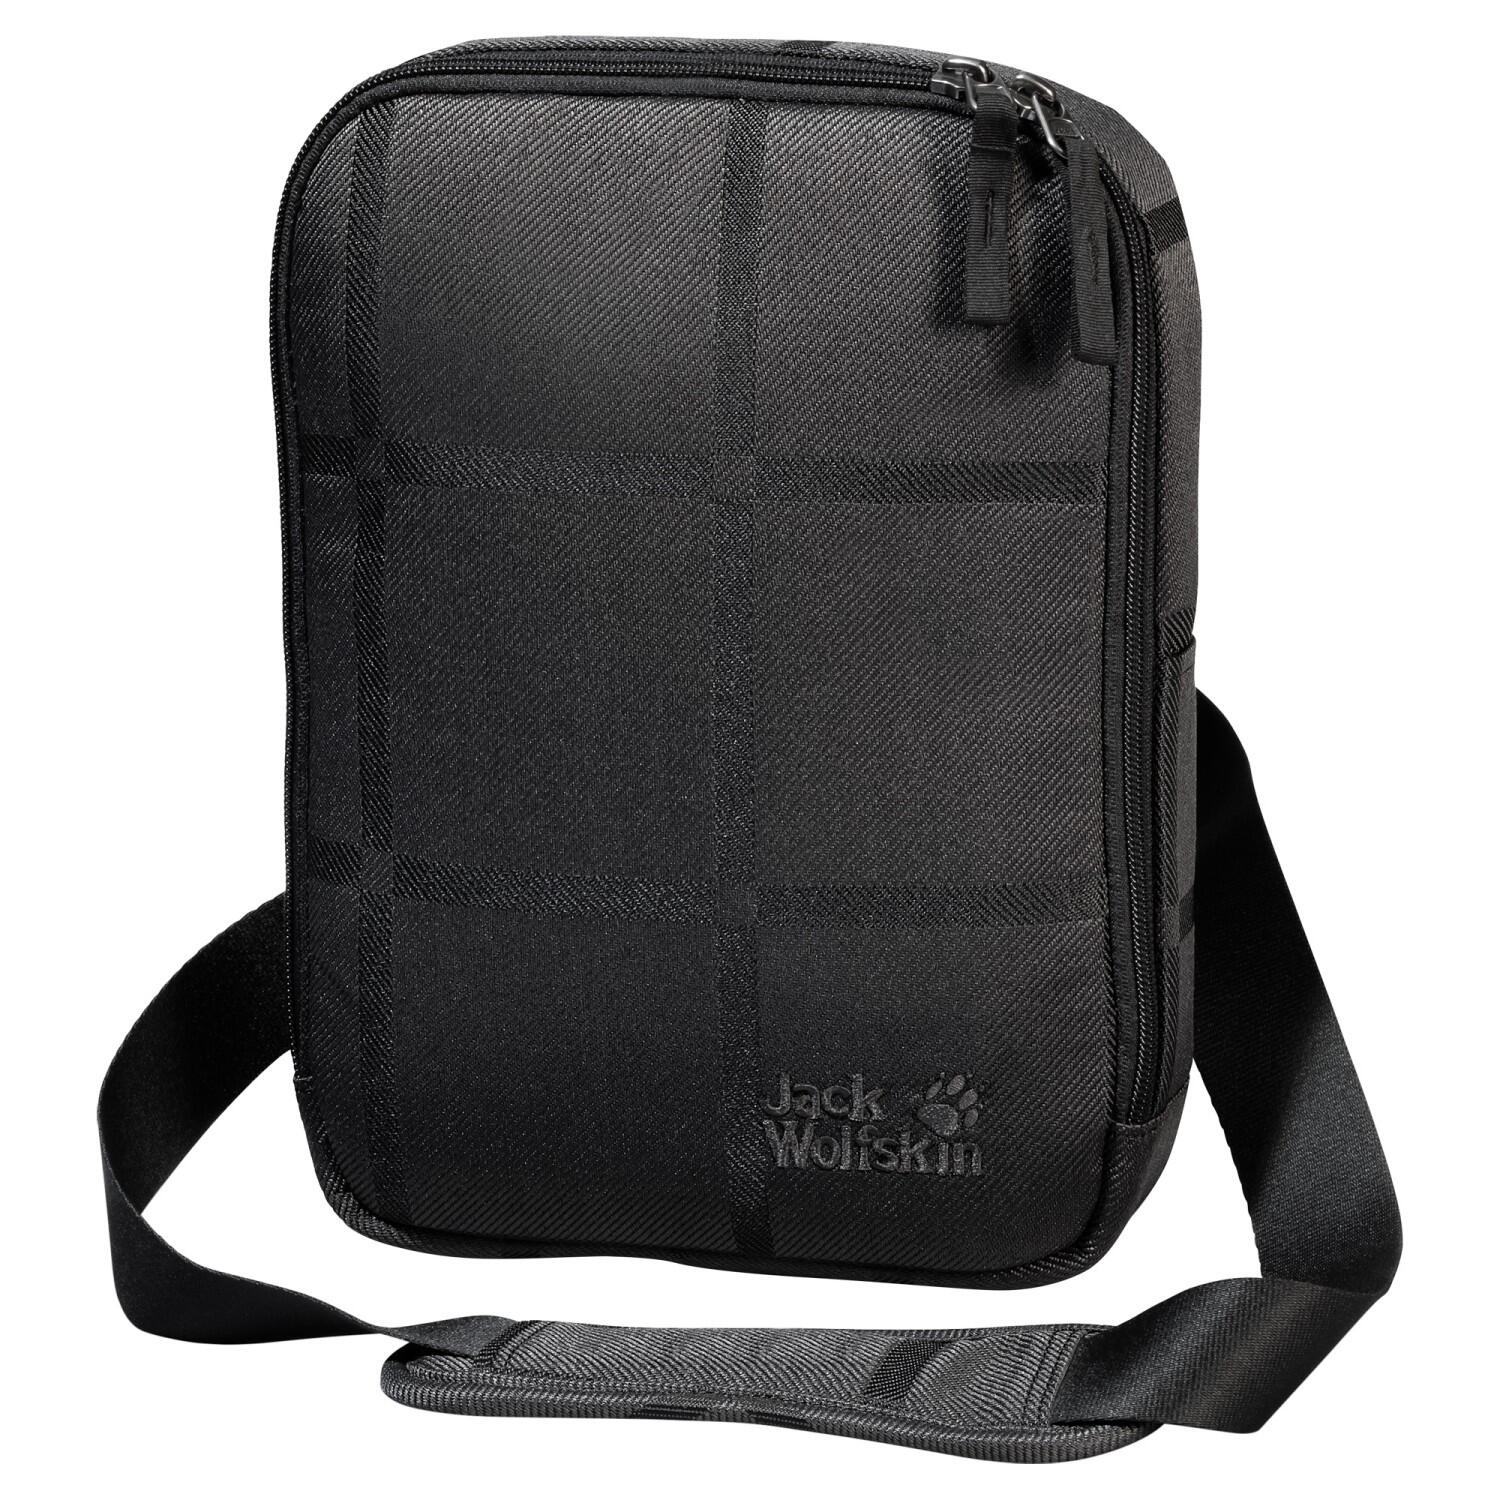 jack-wolfskin-gadgetary-y-d-umh-auml-ngetasche-farbe-8014-black-big-check-